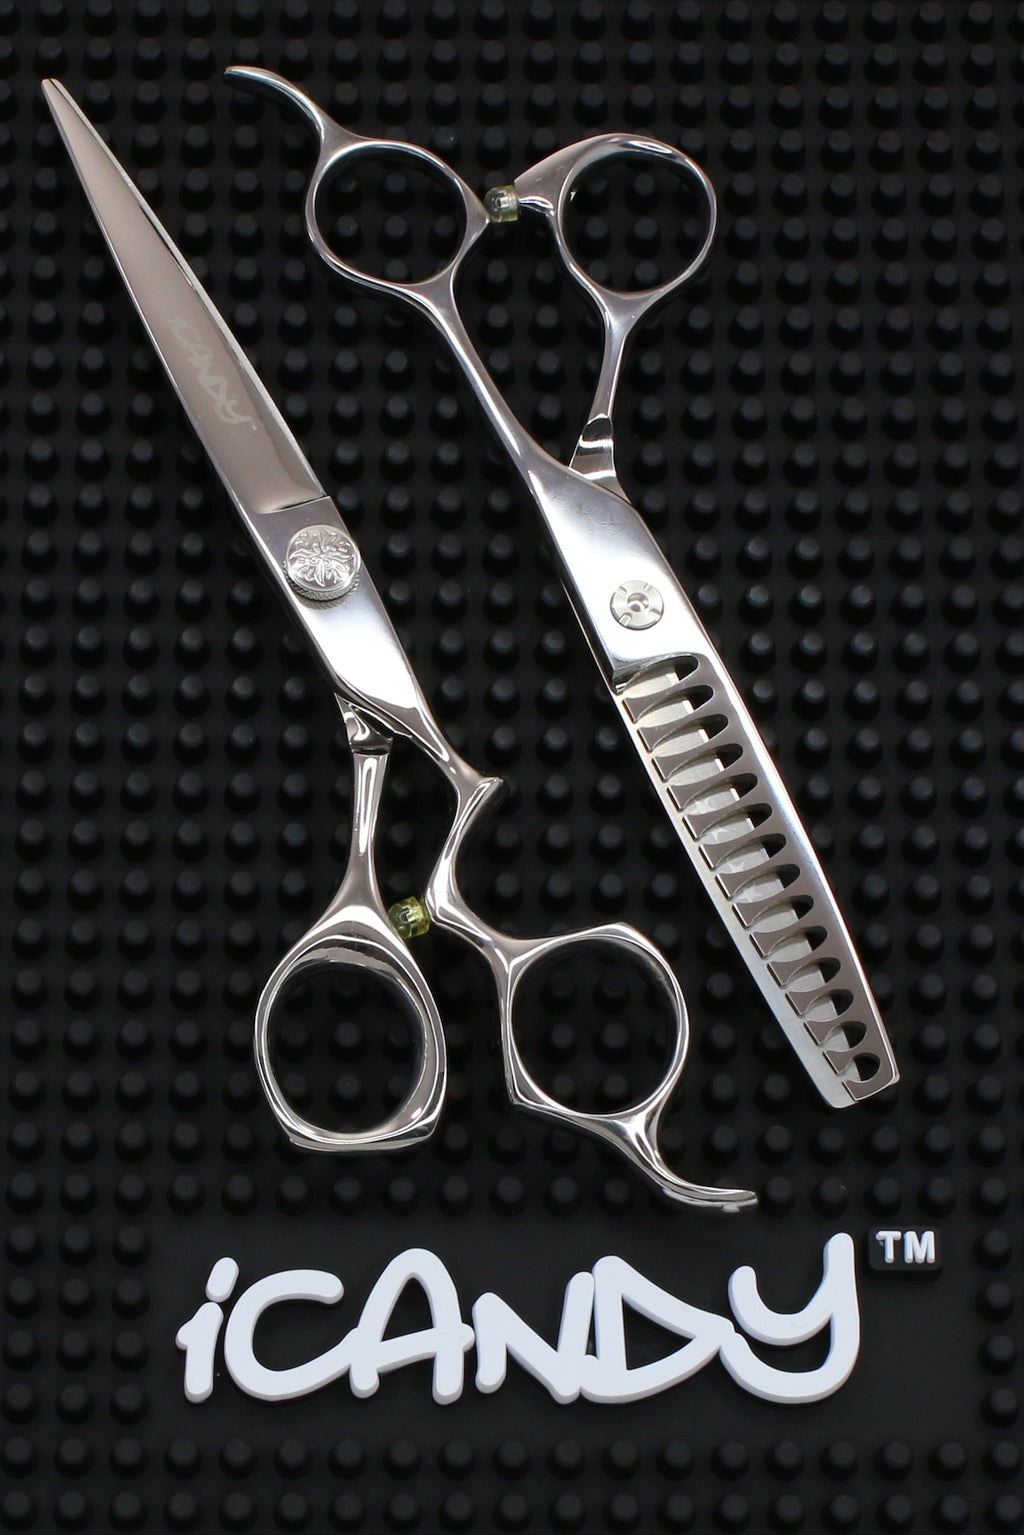 iCandy Athena Scissor 6.5 & Tex 6.0 Bundle (6.5/6 inch) - iCandy Scissors